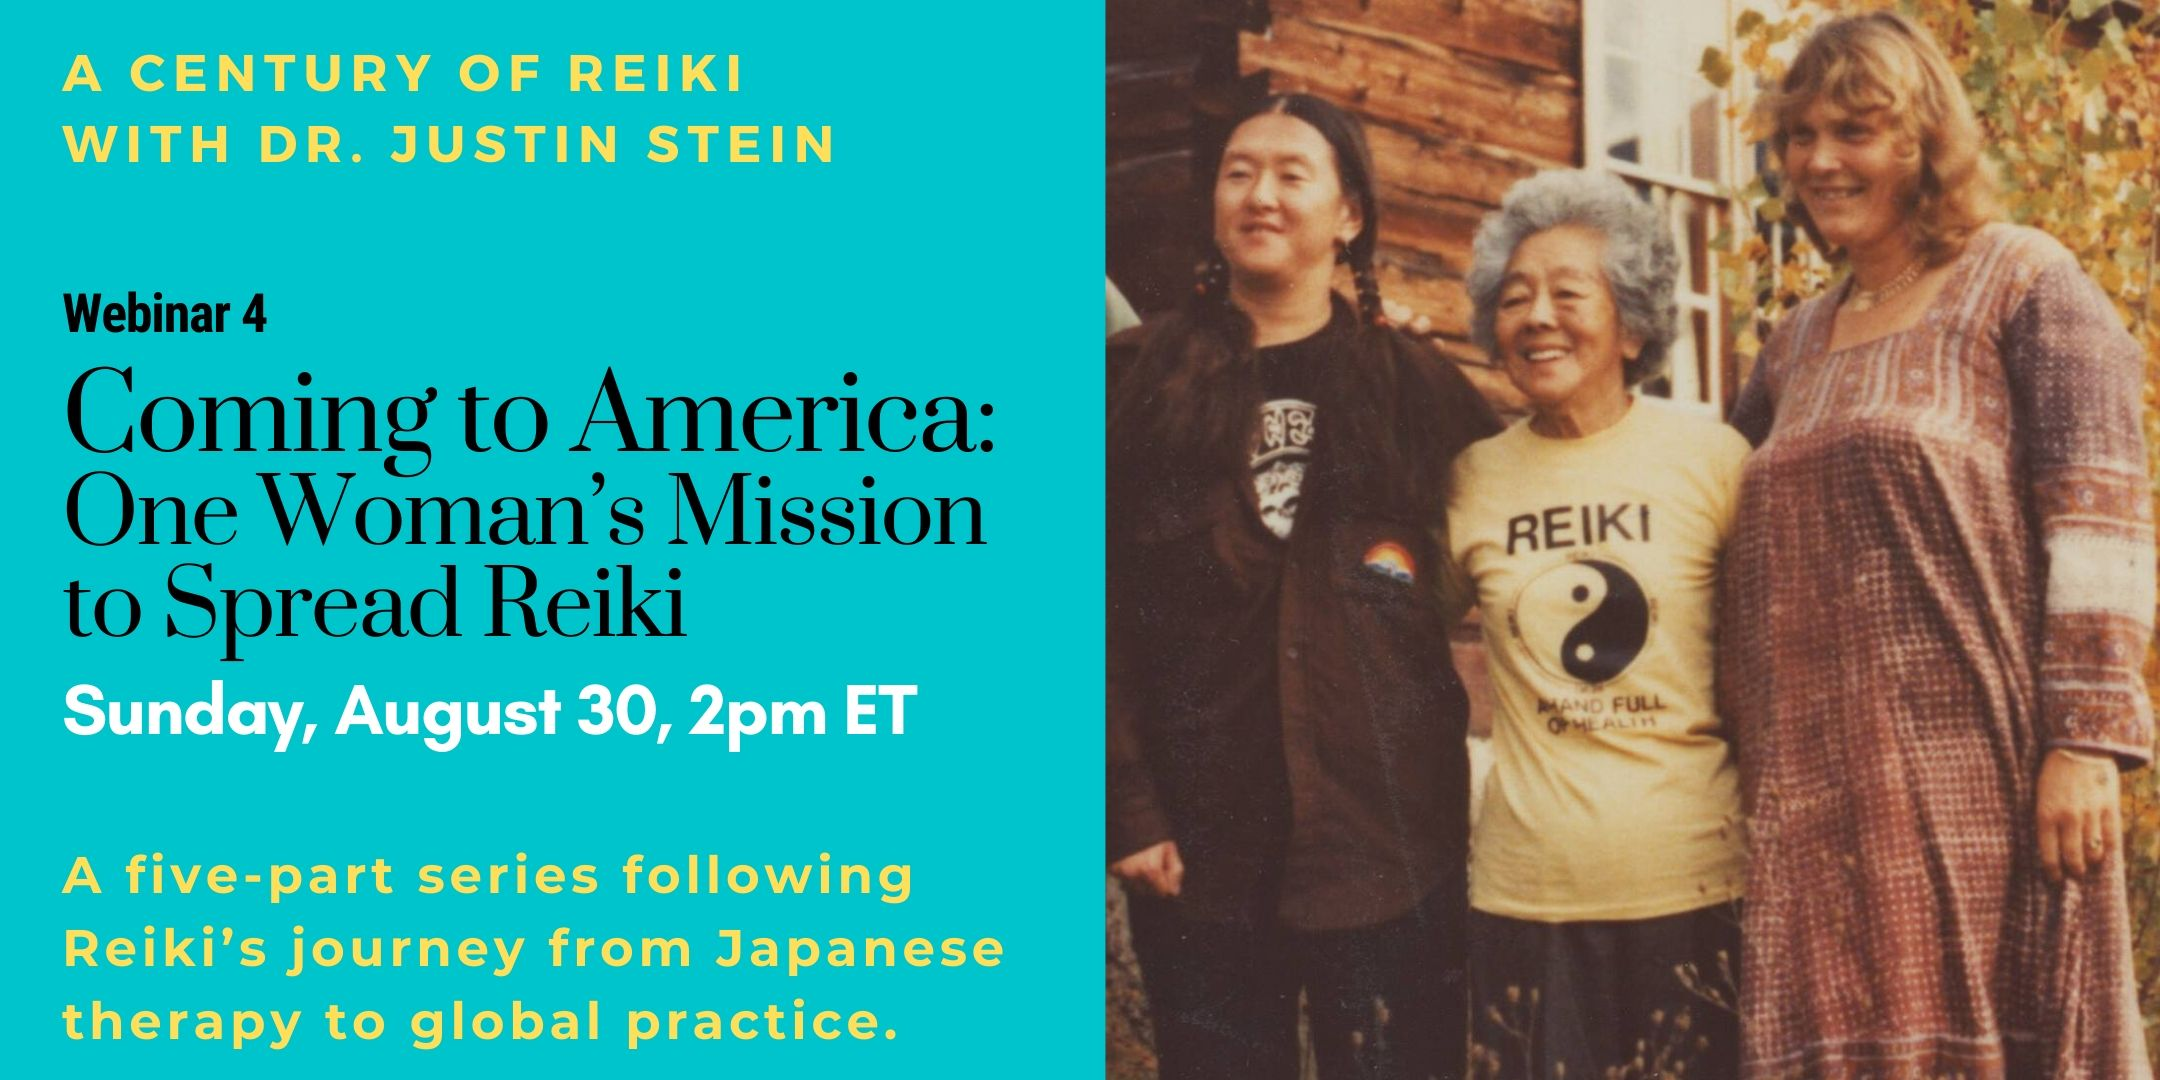 Image for webinar 4 in the series A Century of Reiki with Dr. Justin Stein